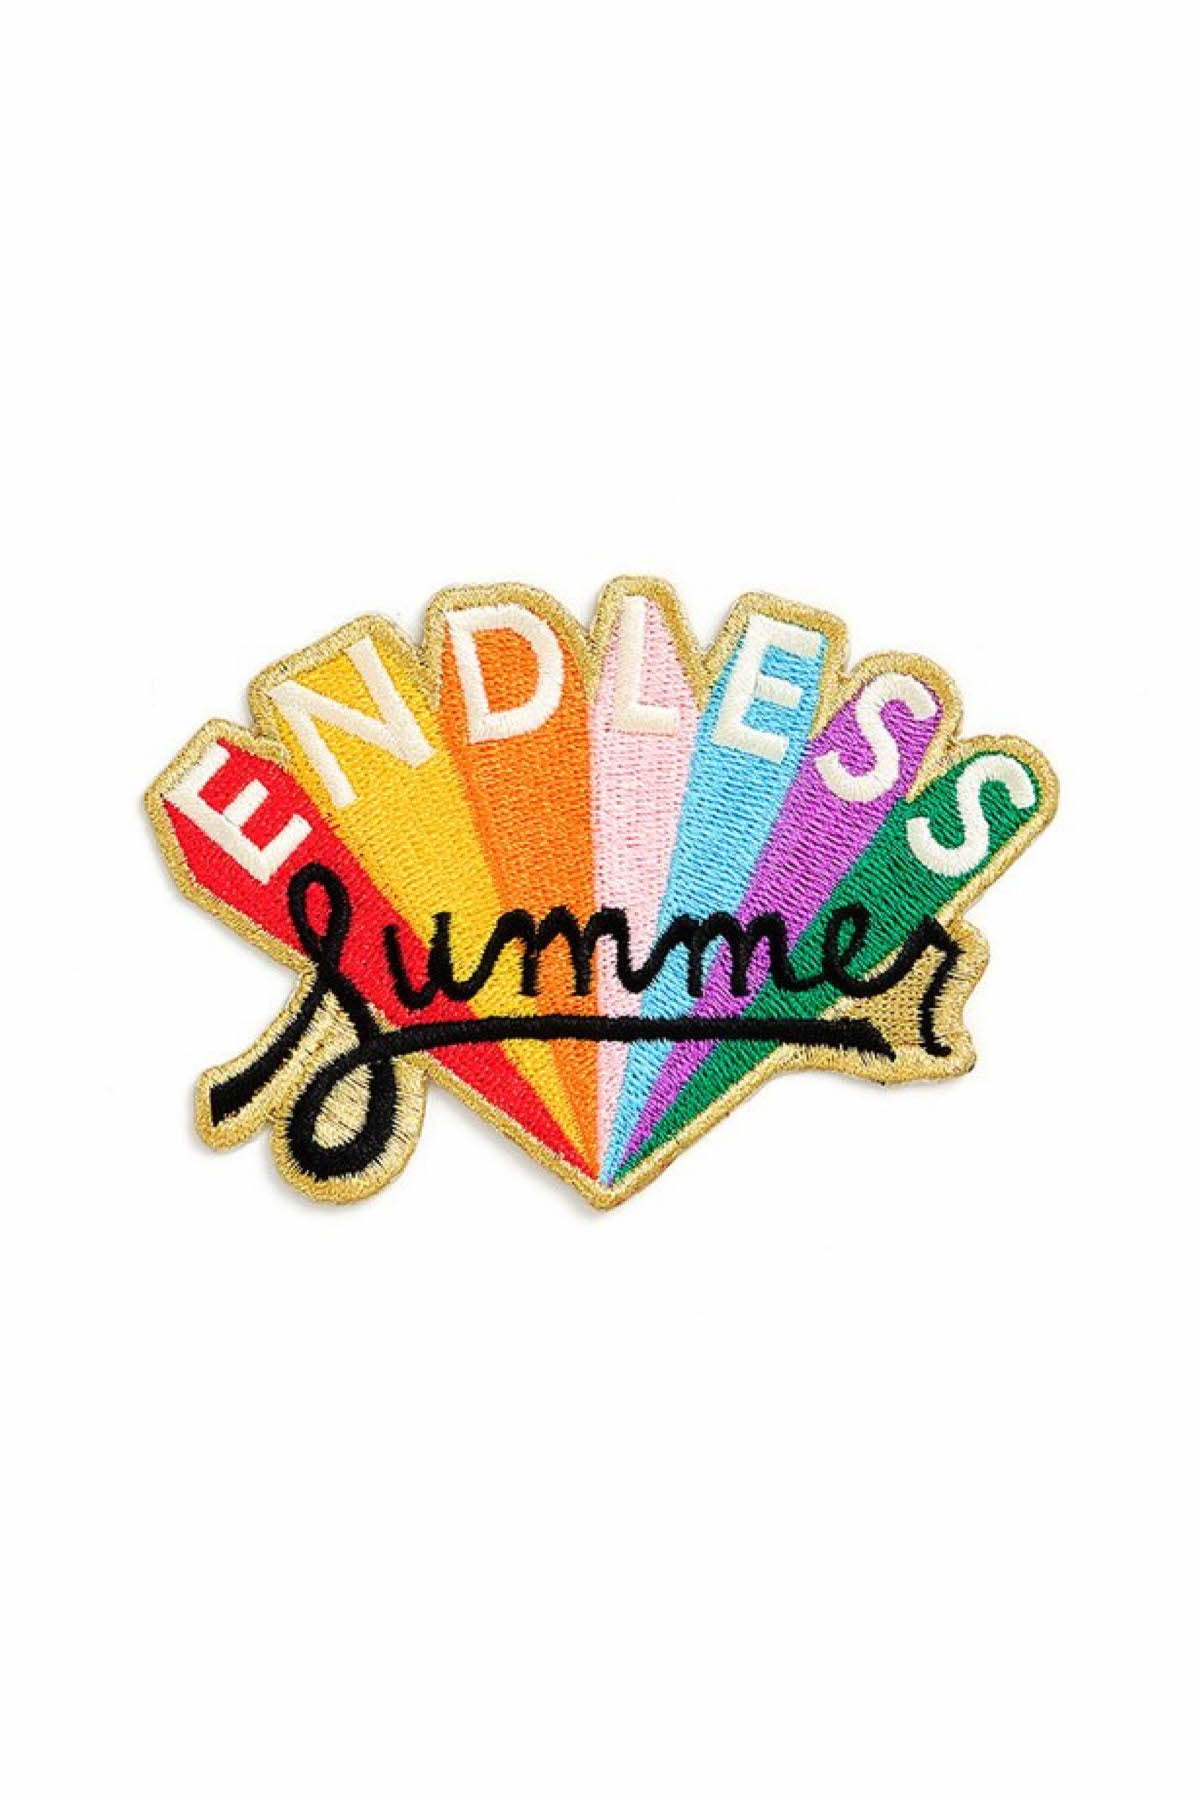 Ban.do Endless Summer Embroidered Patch